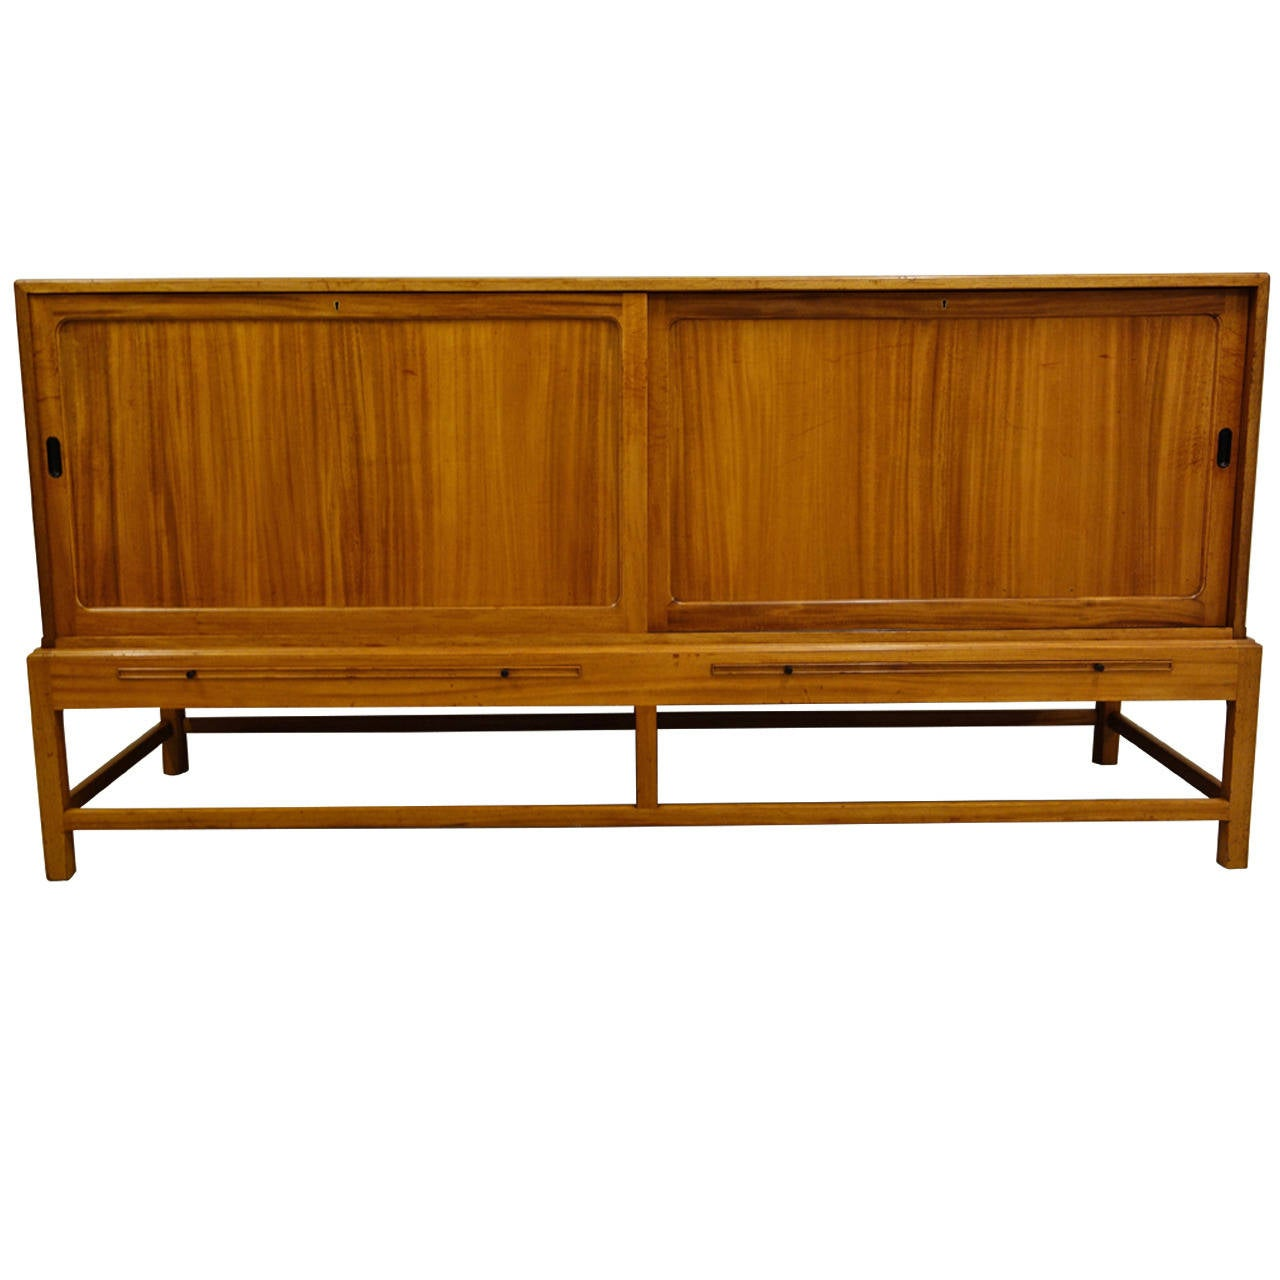 Kaare klint 1930s sideboard in mahogany at 1stdibs for Sideboard 2 50 m